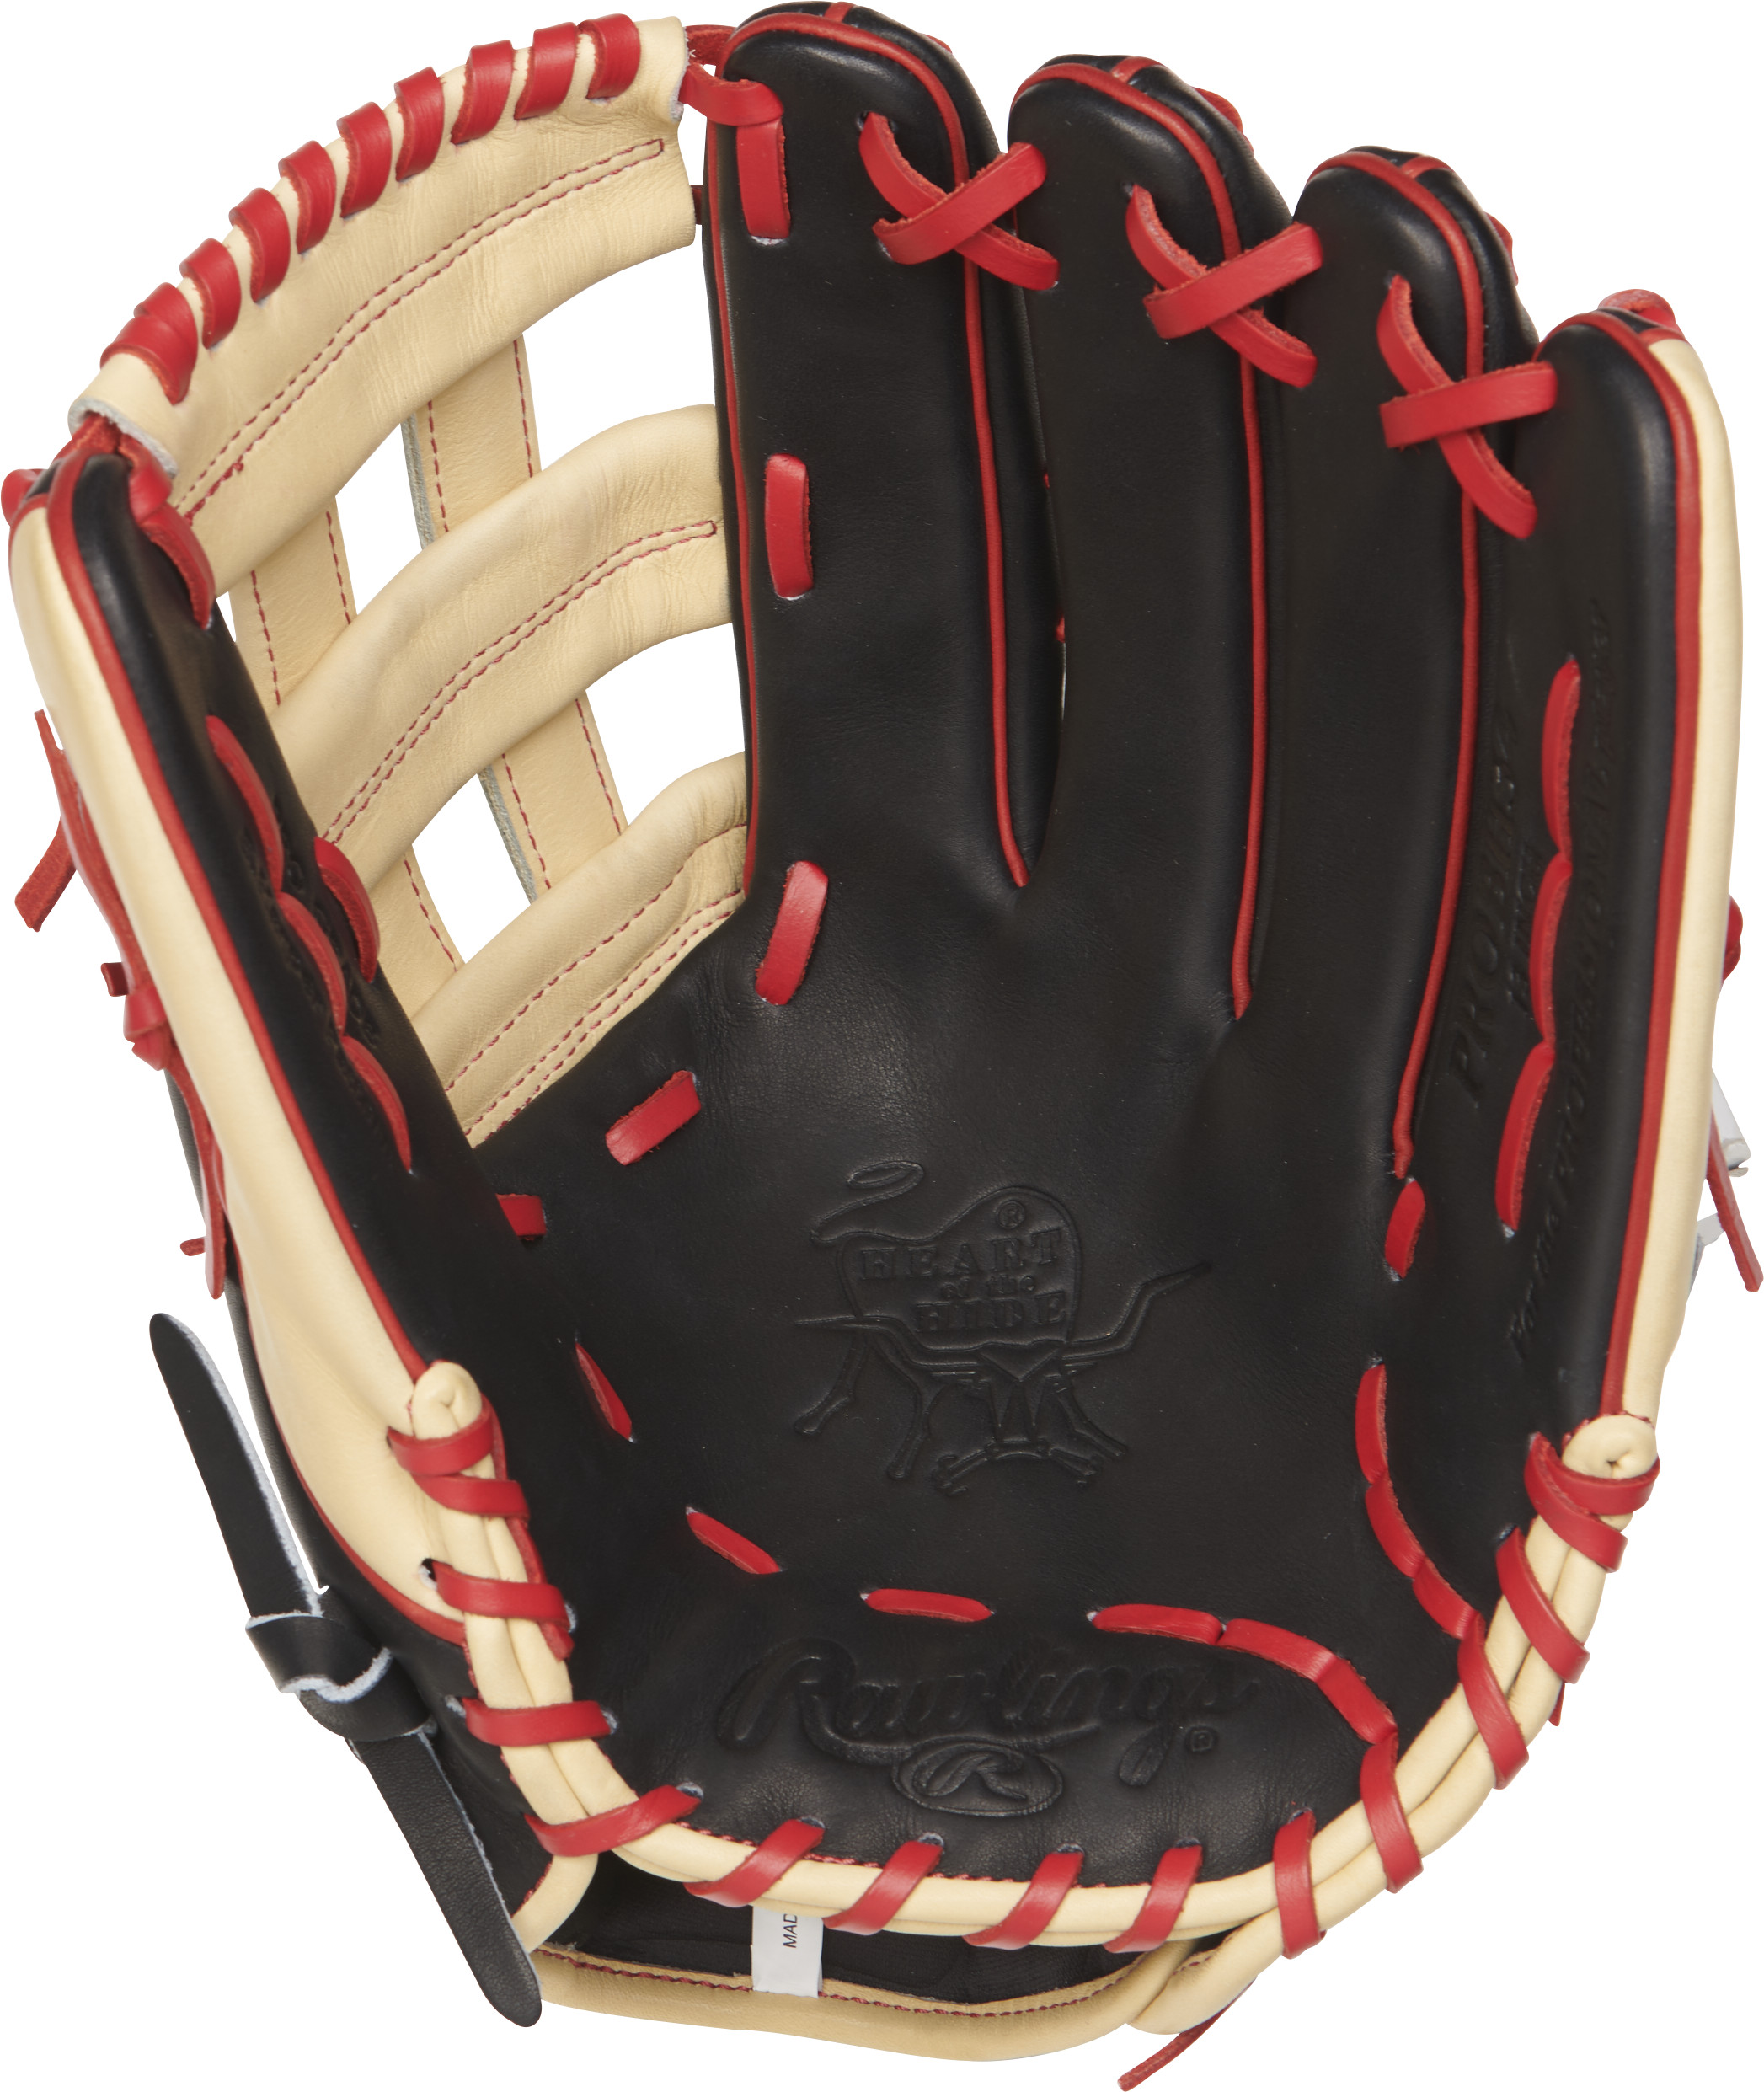 http://www.bestbatdeals.com/images/gloves/rawlings/PROBH34-1.jpg